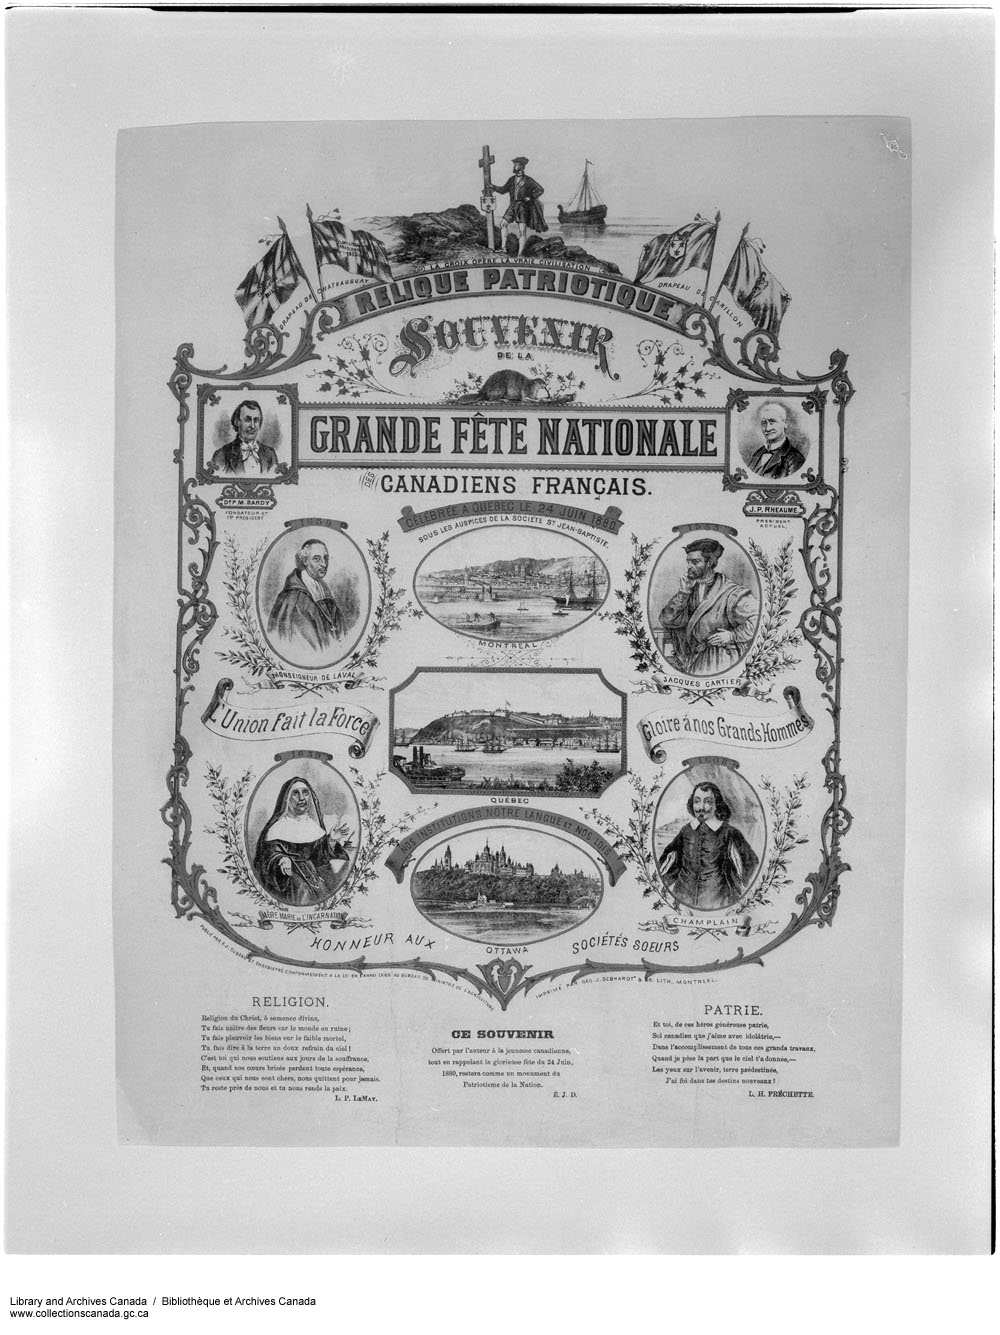 Souvenir of the St-Jean-Baptiste Day, Québec City (1880)